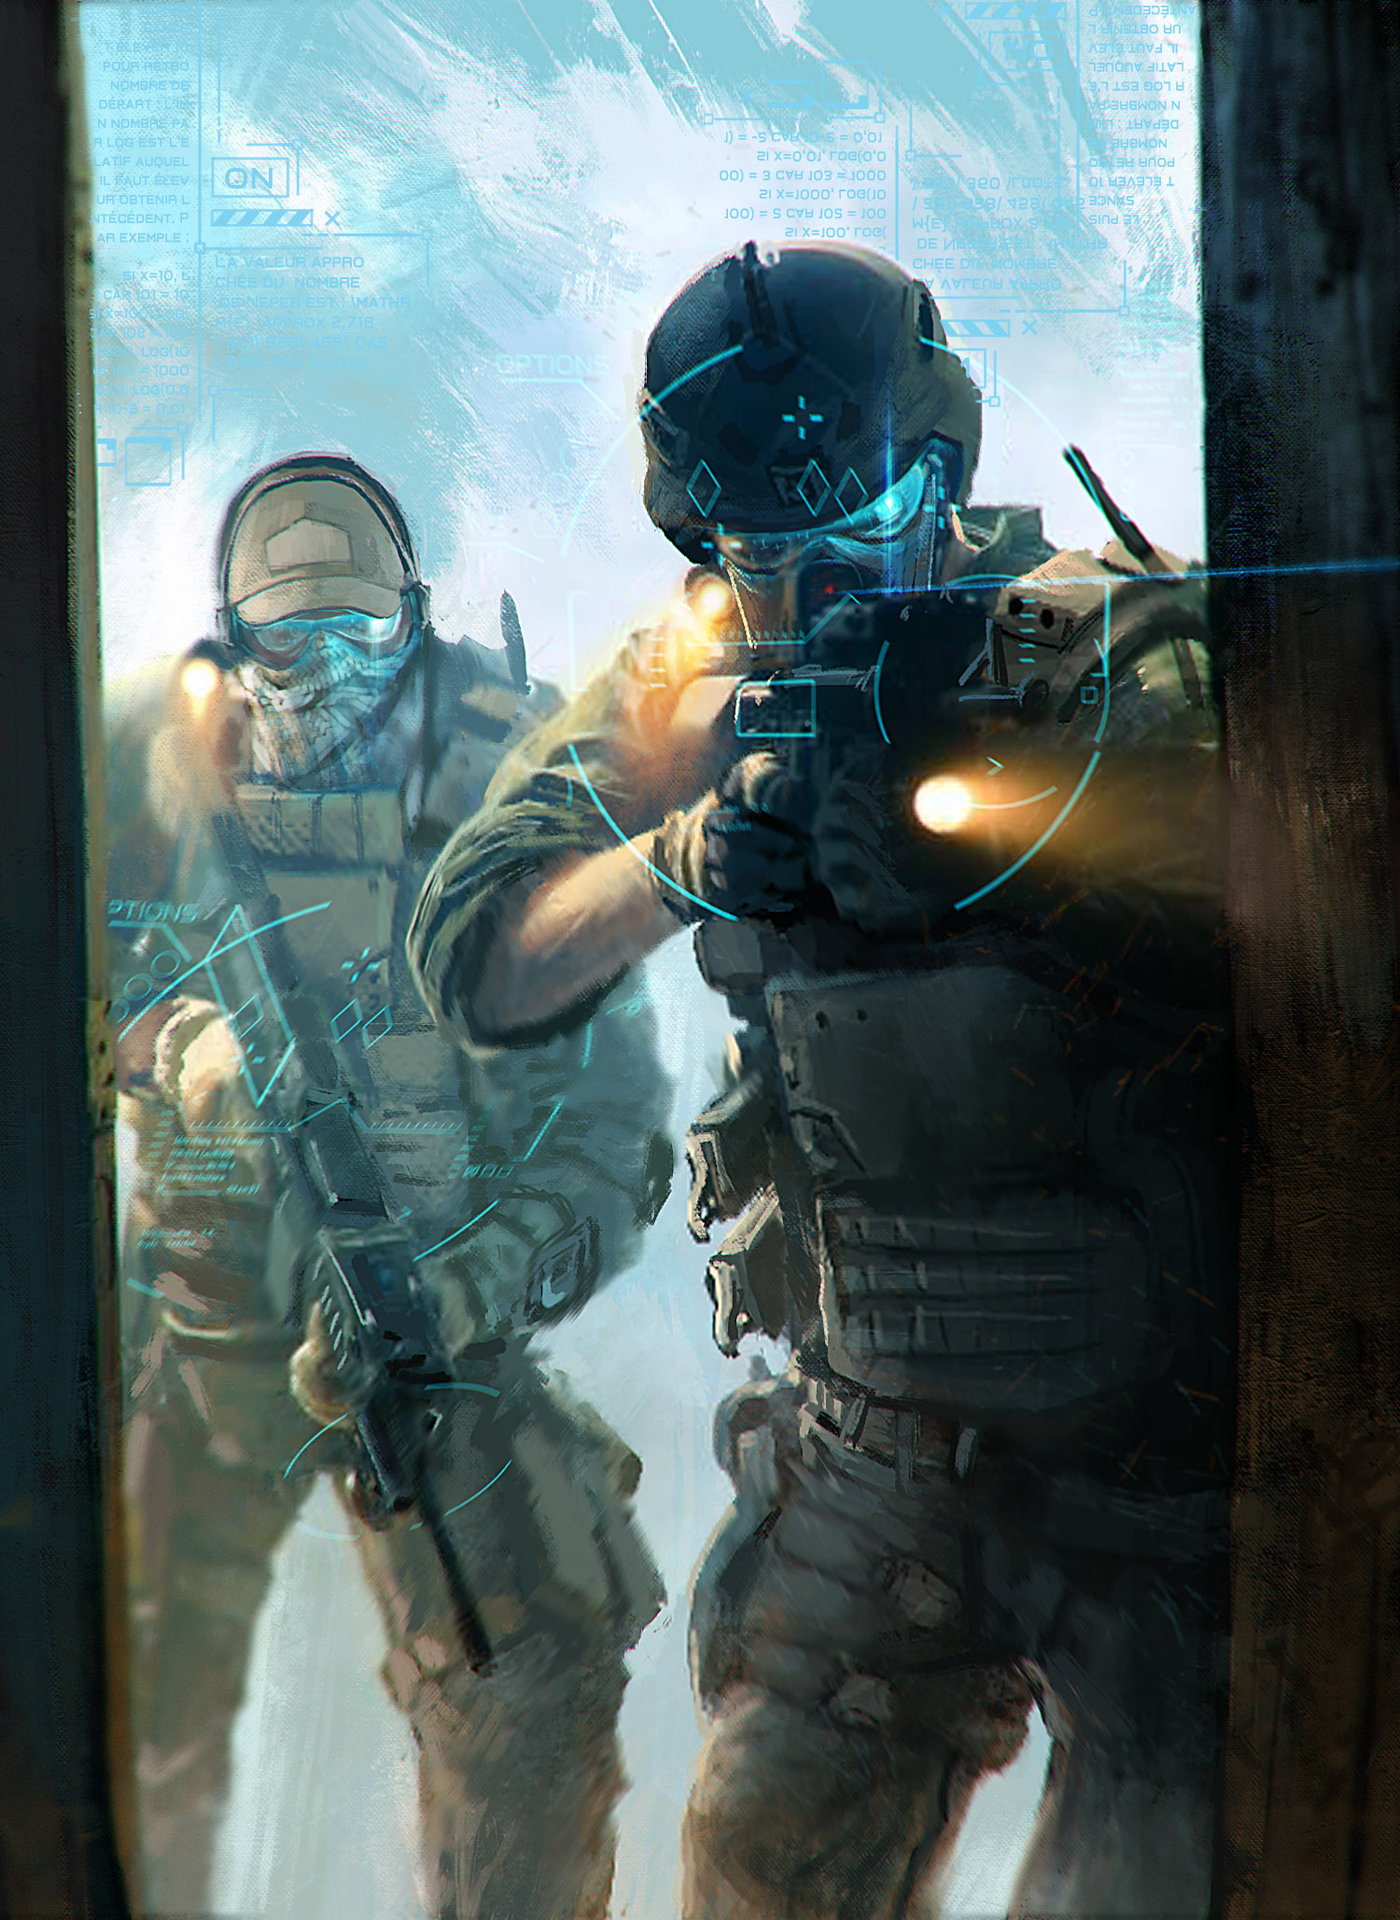 ArtStation - Ghost Recon Future Soldier, loïc [Liok] bramoullé